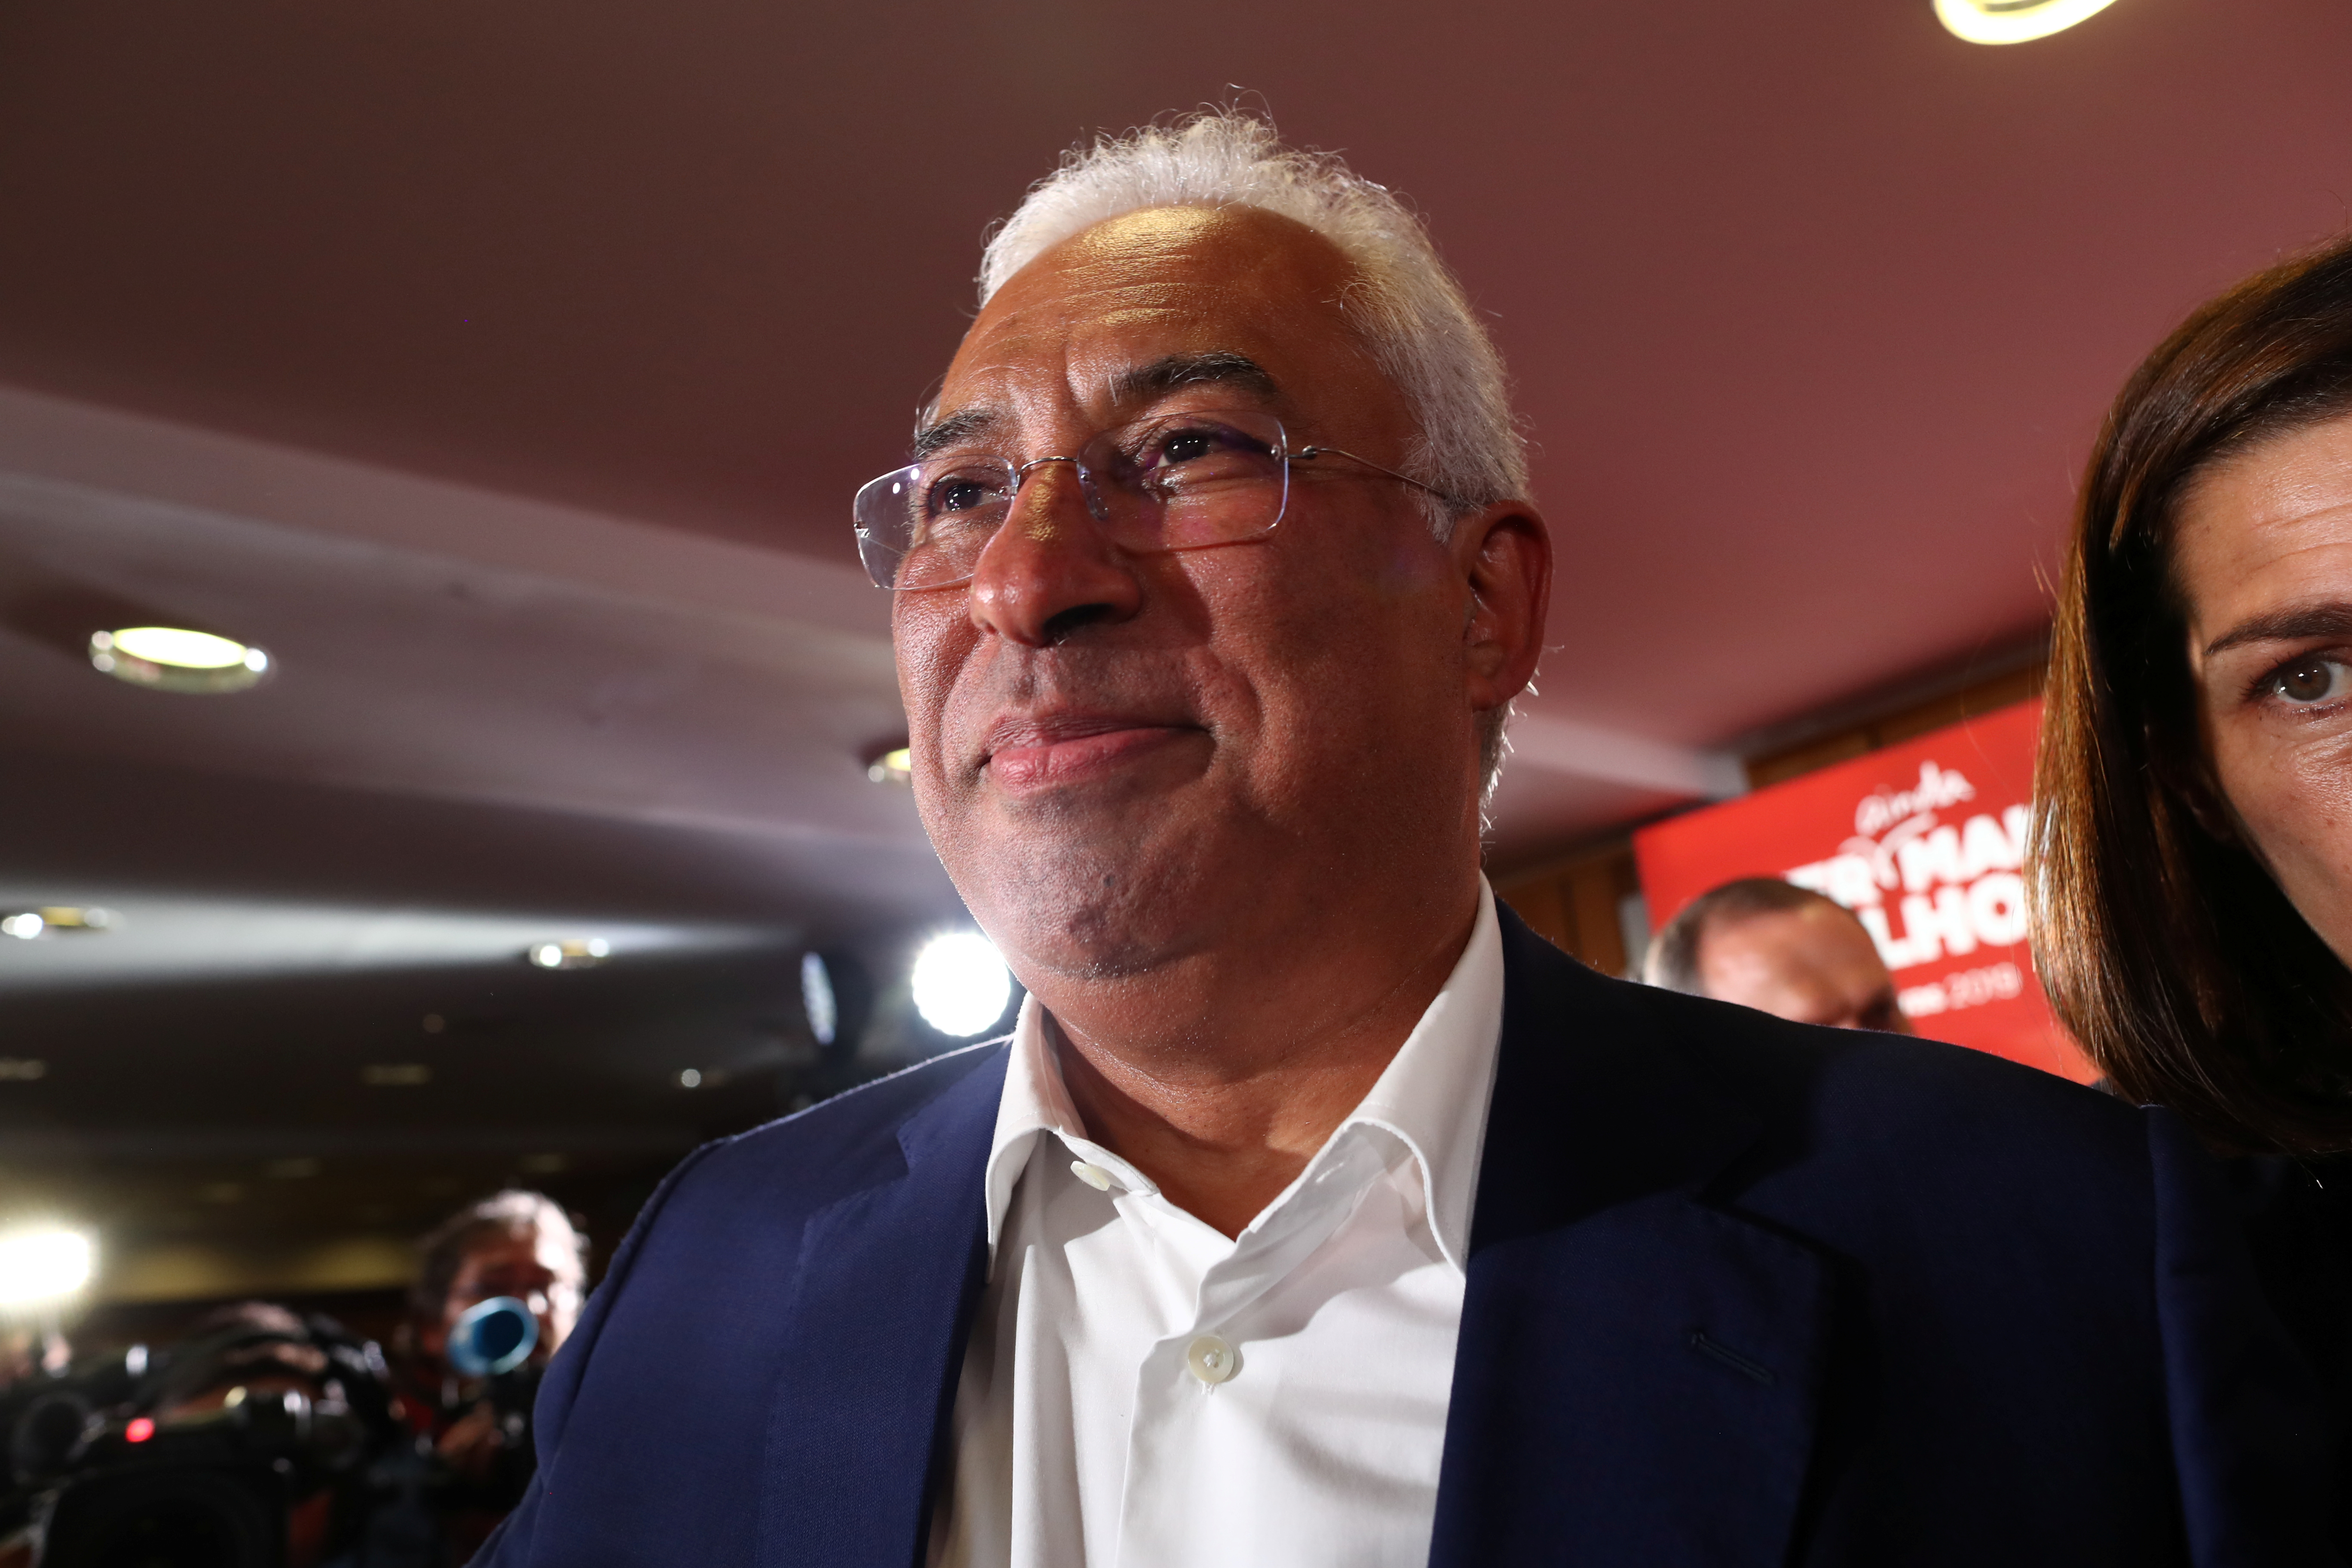 Portugal president asks Socialist Costa to form government